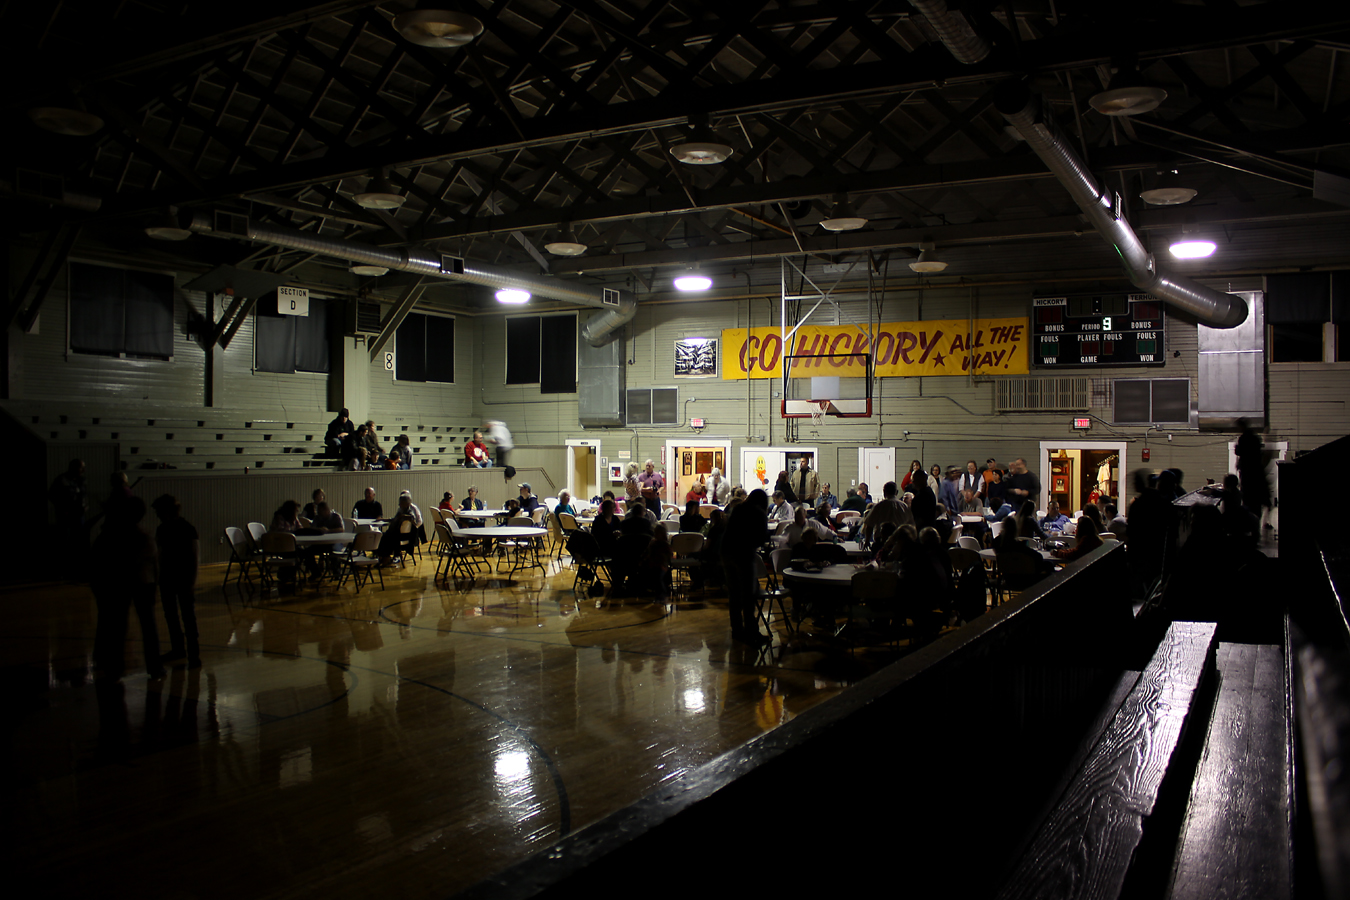 Basketball isn't the only use for Knightstown's historic Hoosier Gym Community Center. Weddings, birthday parties, class reunions, political forums, alumni banquets and sock hops (like the one in this photo) are regular events. Youth basketball leagues practice and play there regularly, as do adult pick-up ball leagues.